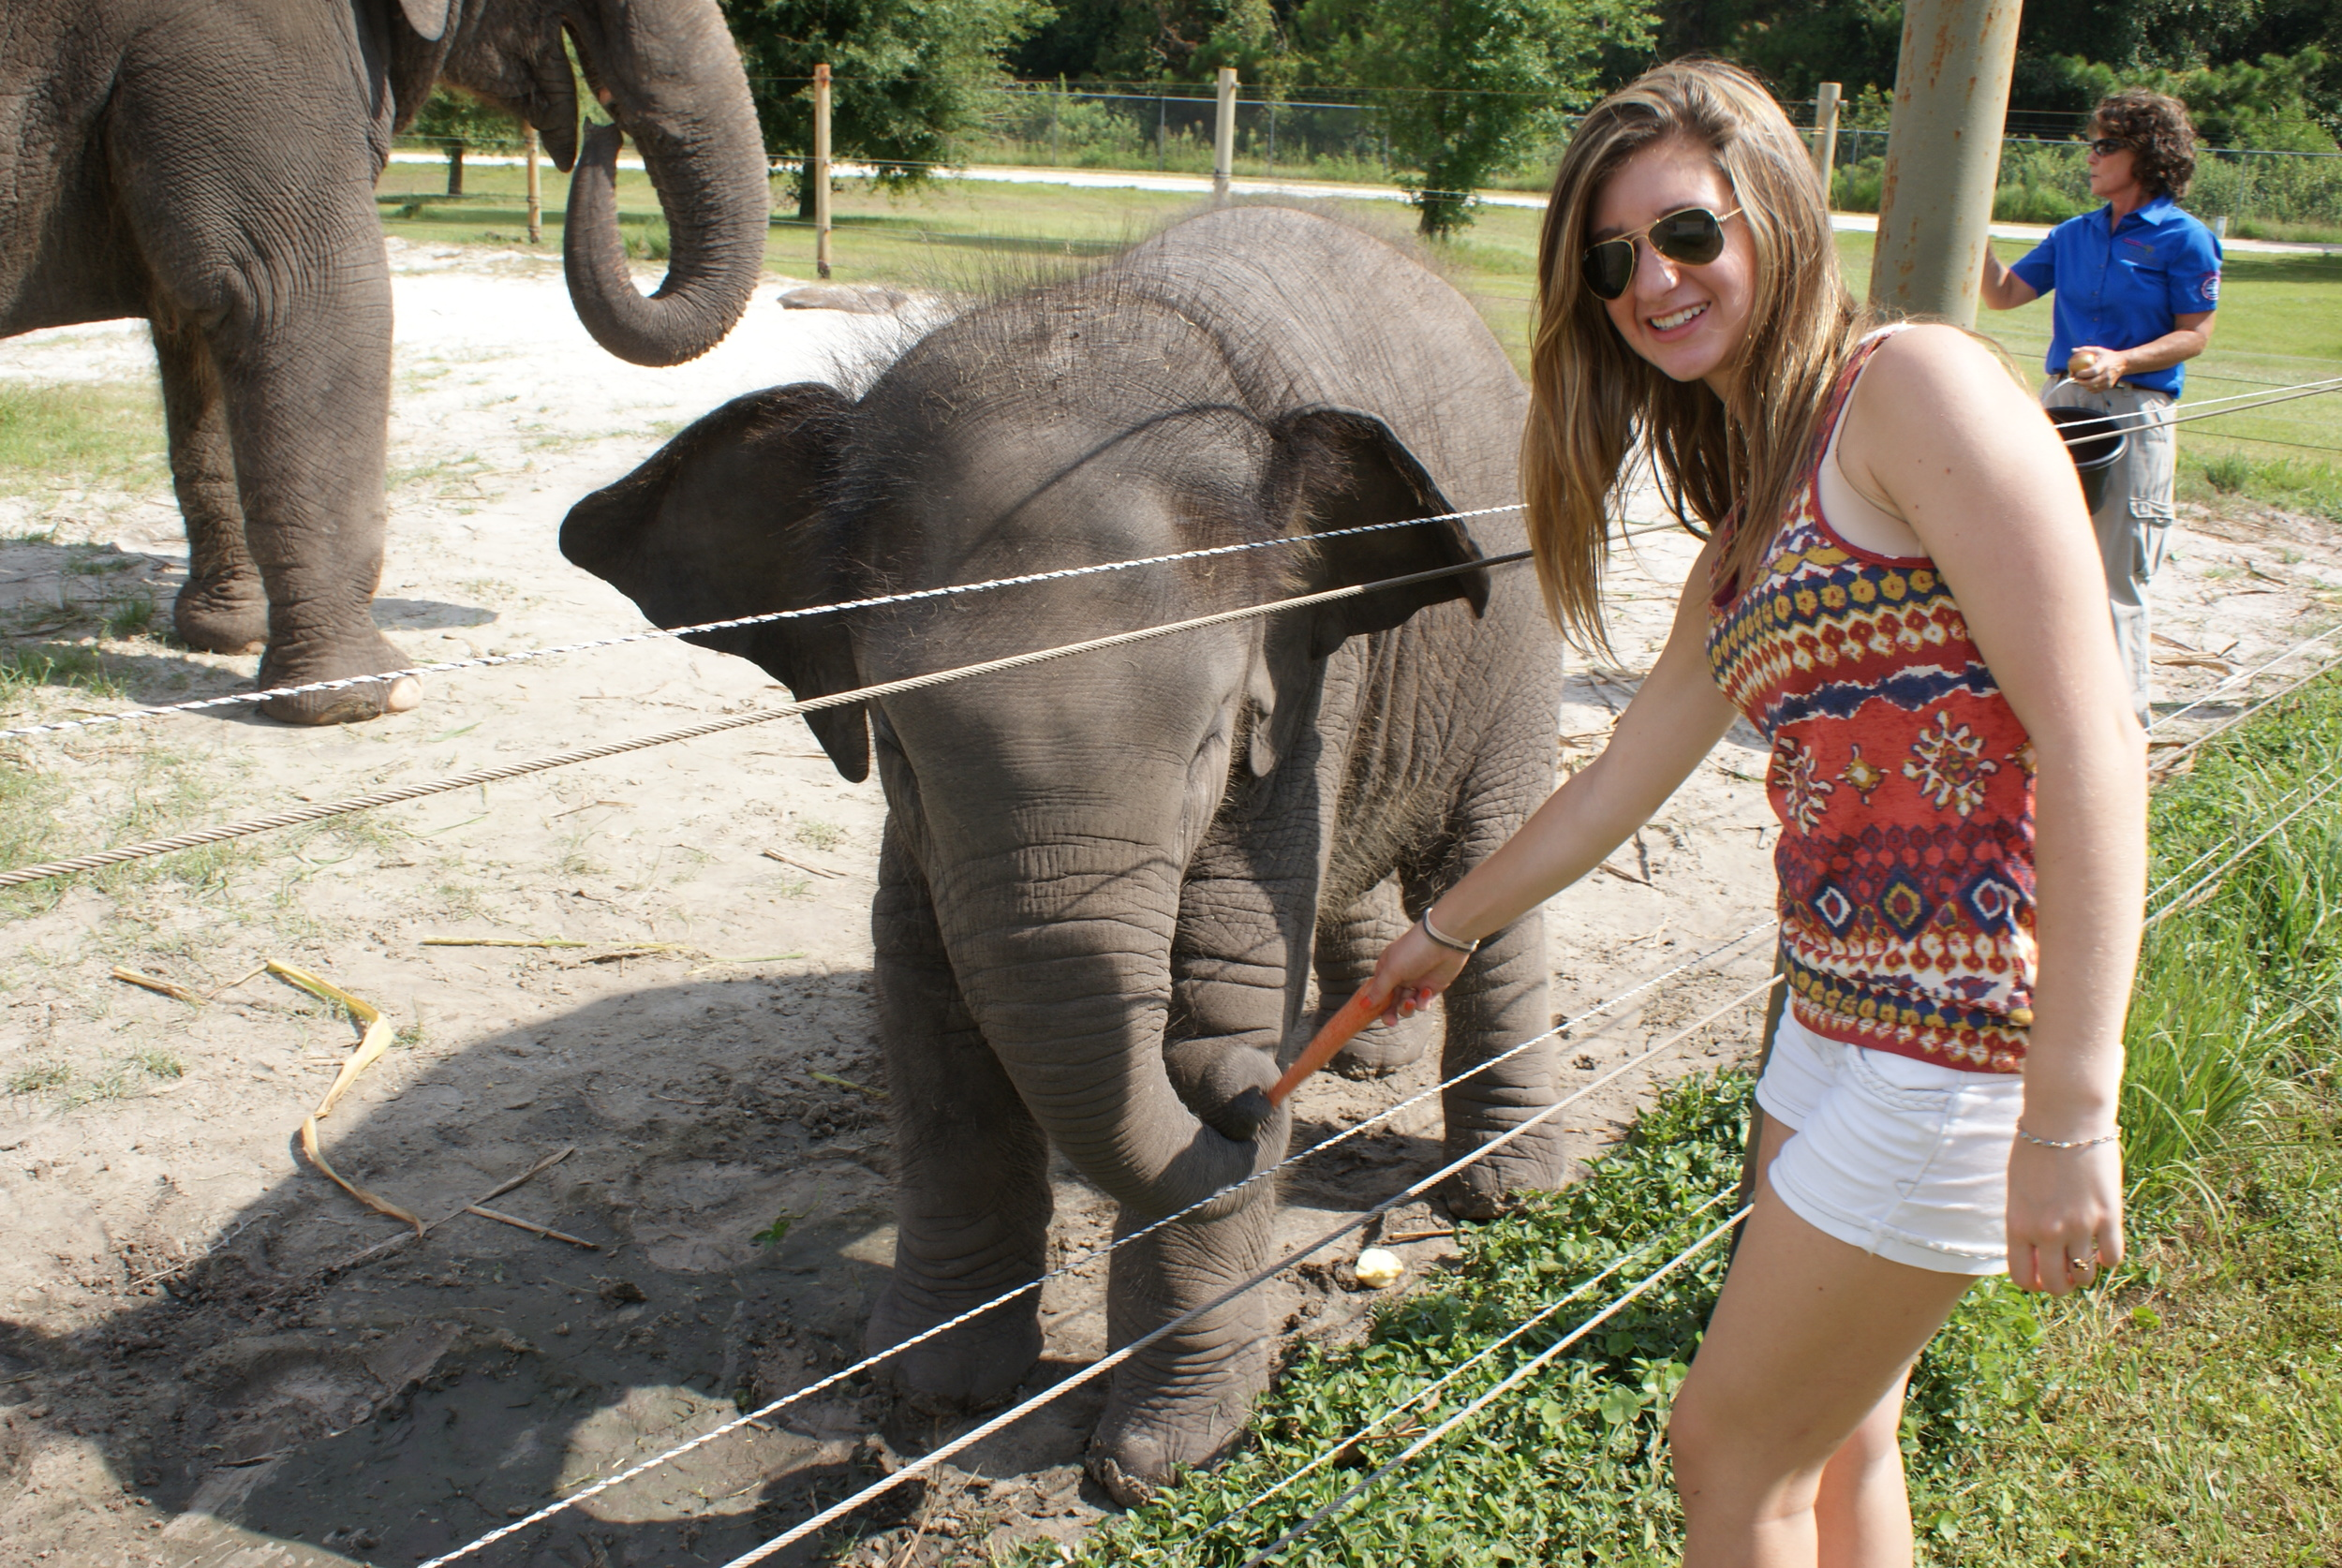 Elephant Conservation Ctr Aug 2014 136.JPG